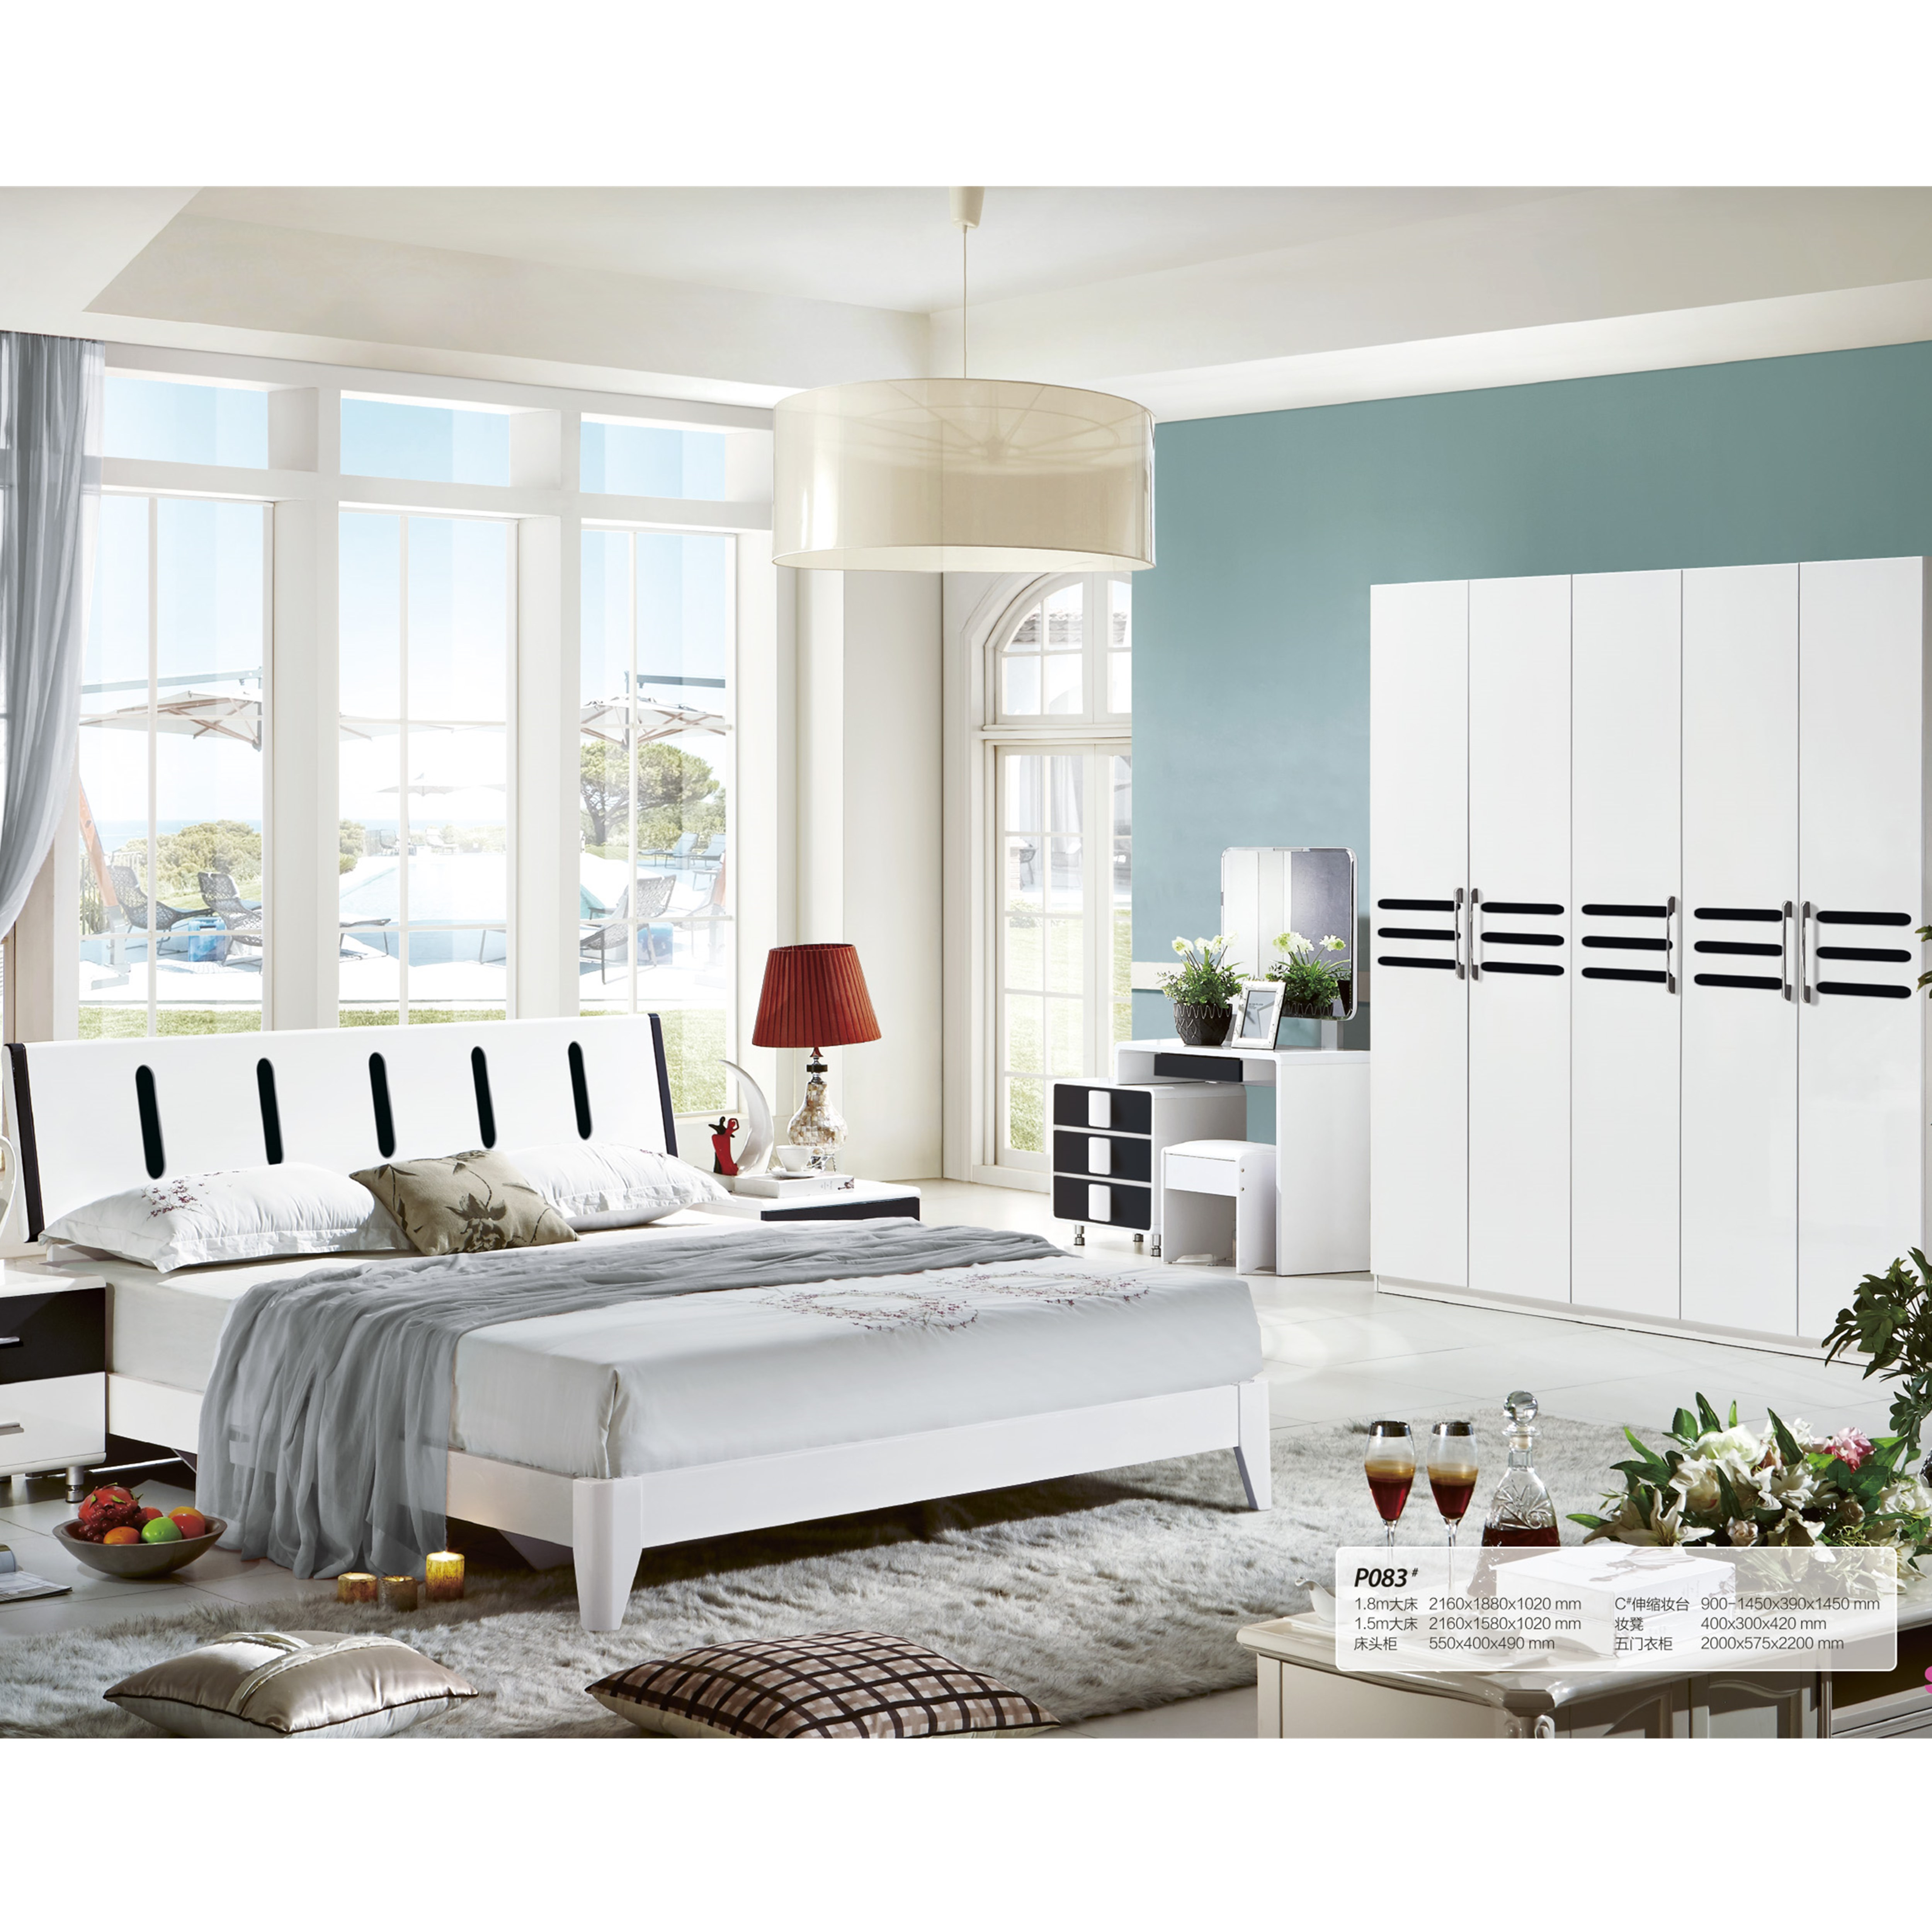 White Color High Gloss Mdf Bedroom Furniture King Size Bed - Buy King Size  Bed,Bedroom Furniture King Size Bed,White Color High Gloss Mdf Bedroom